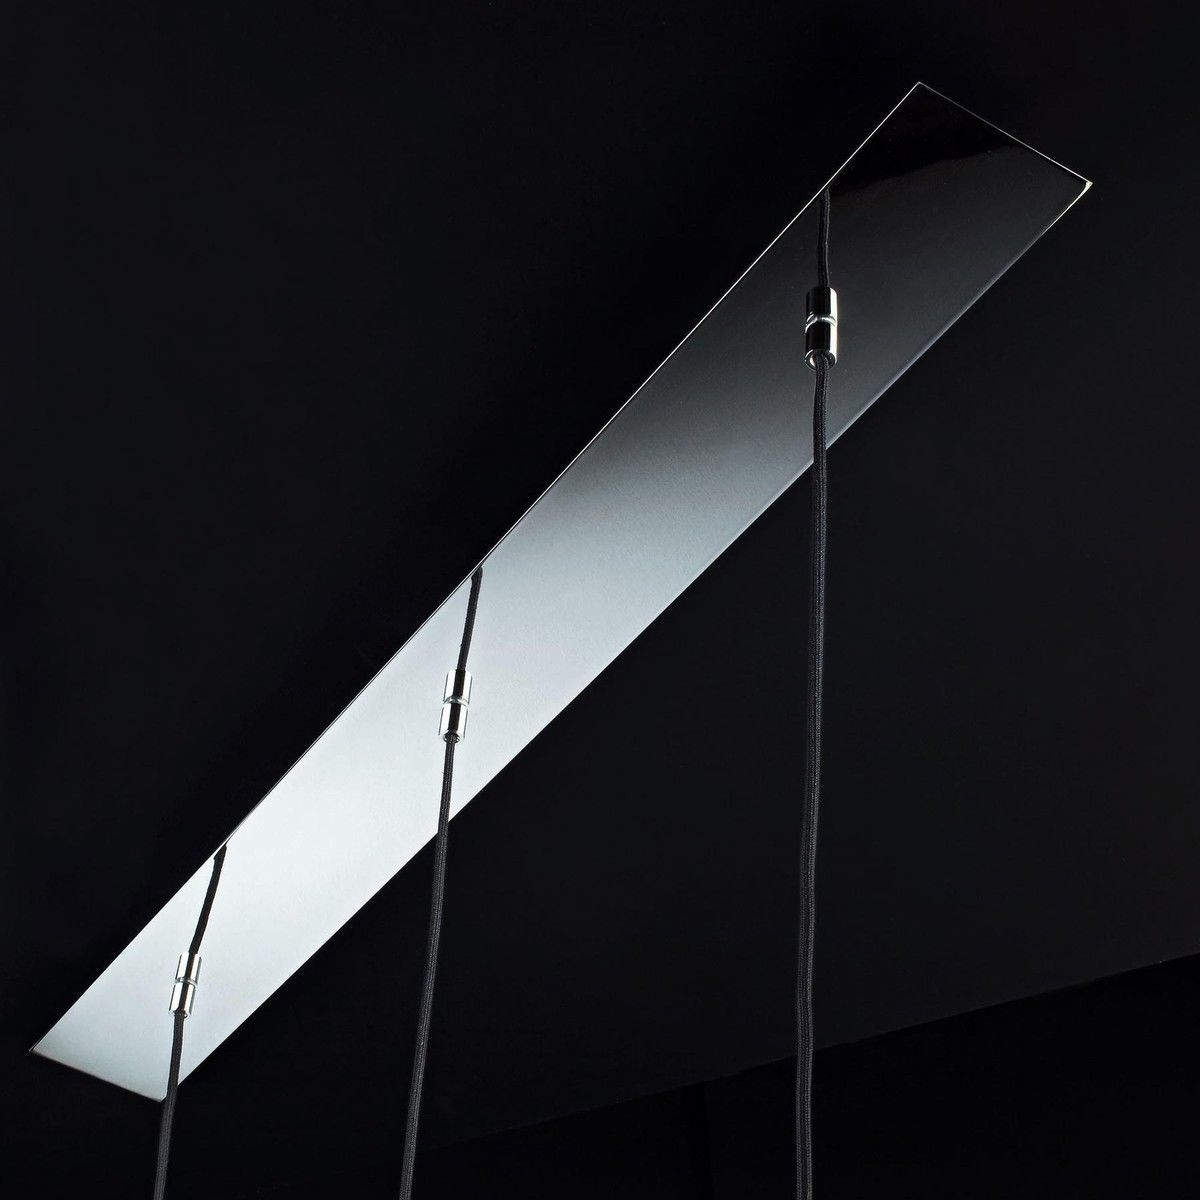 Pipe 3 led suspension lamp decor walther ambientedirect com - Decor Walther Pipe 3 Led Suspension Lamp